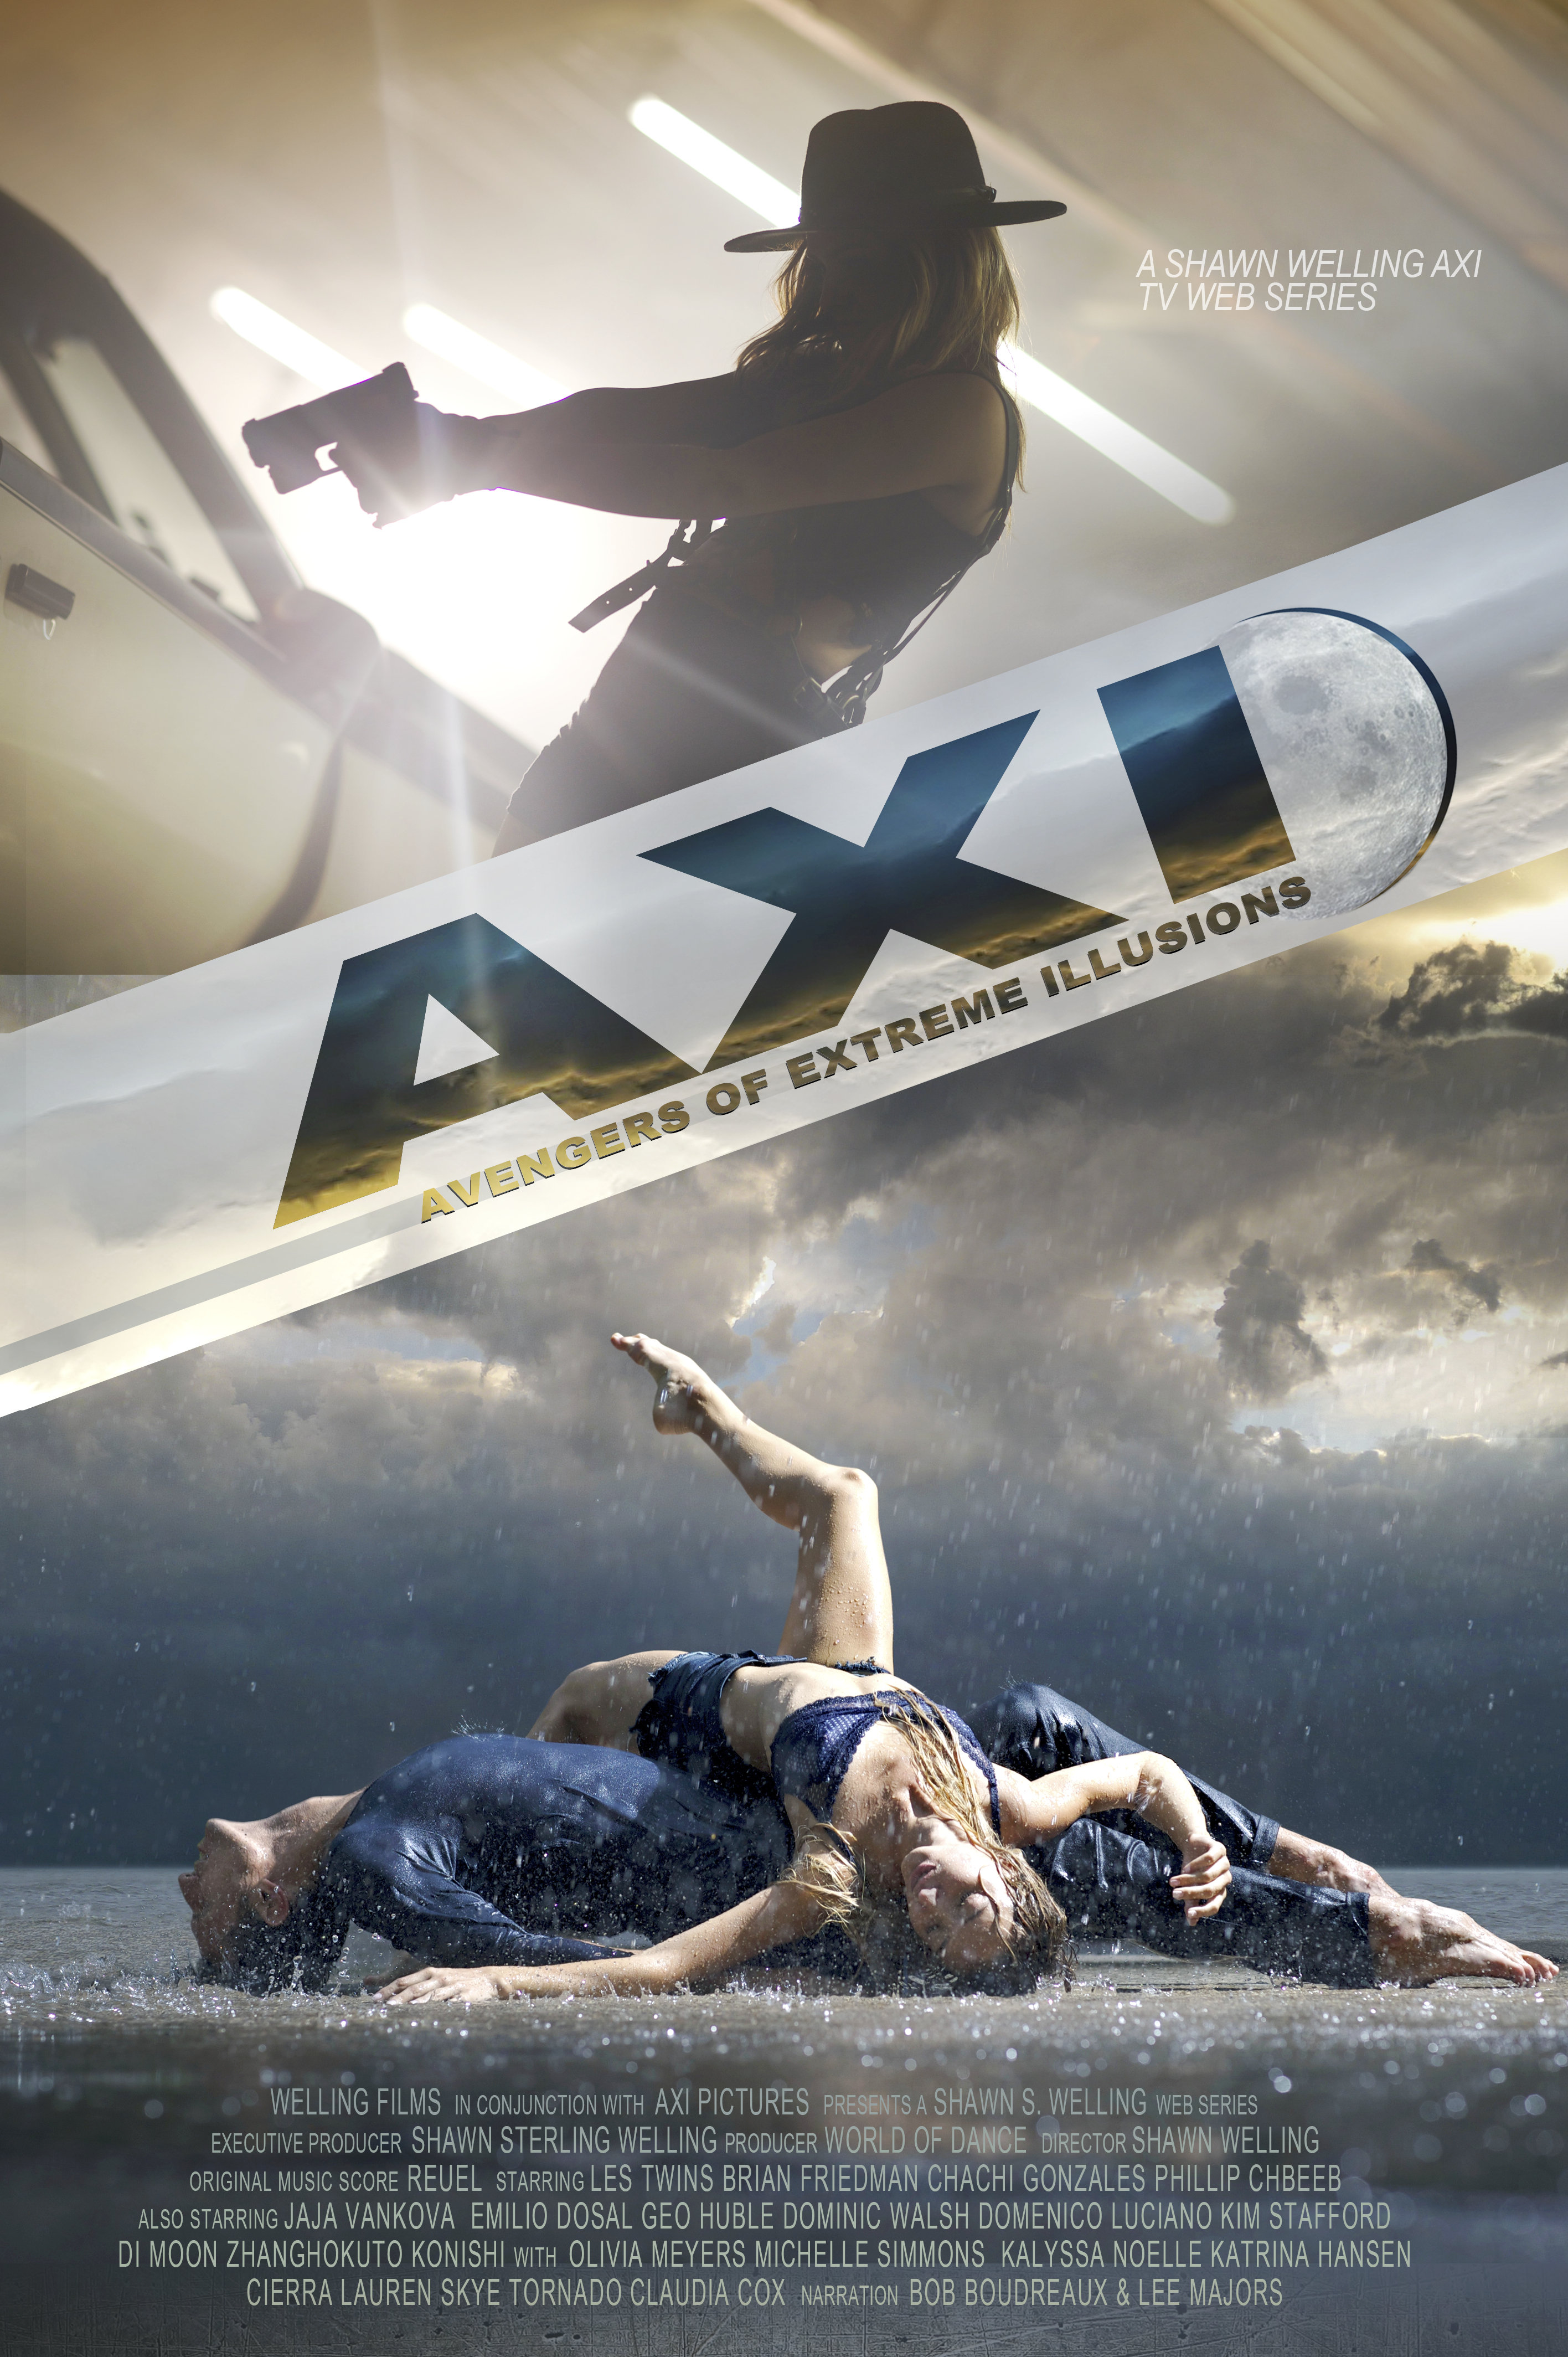 The AXI: Avengers of Extreme Illusions